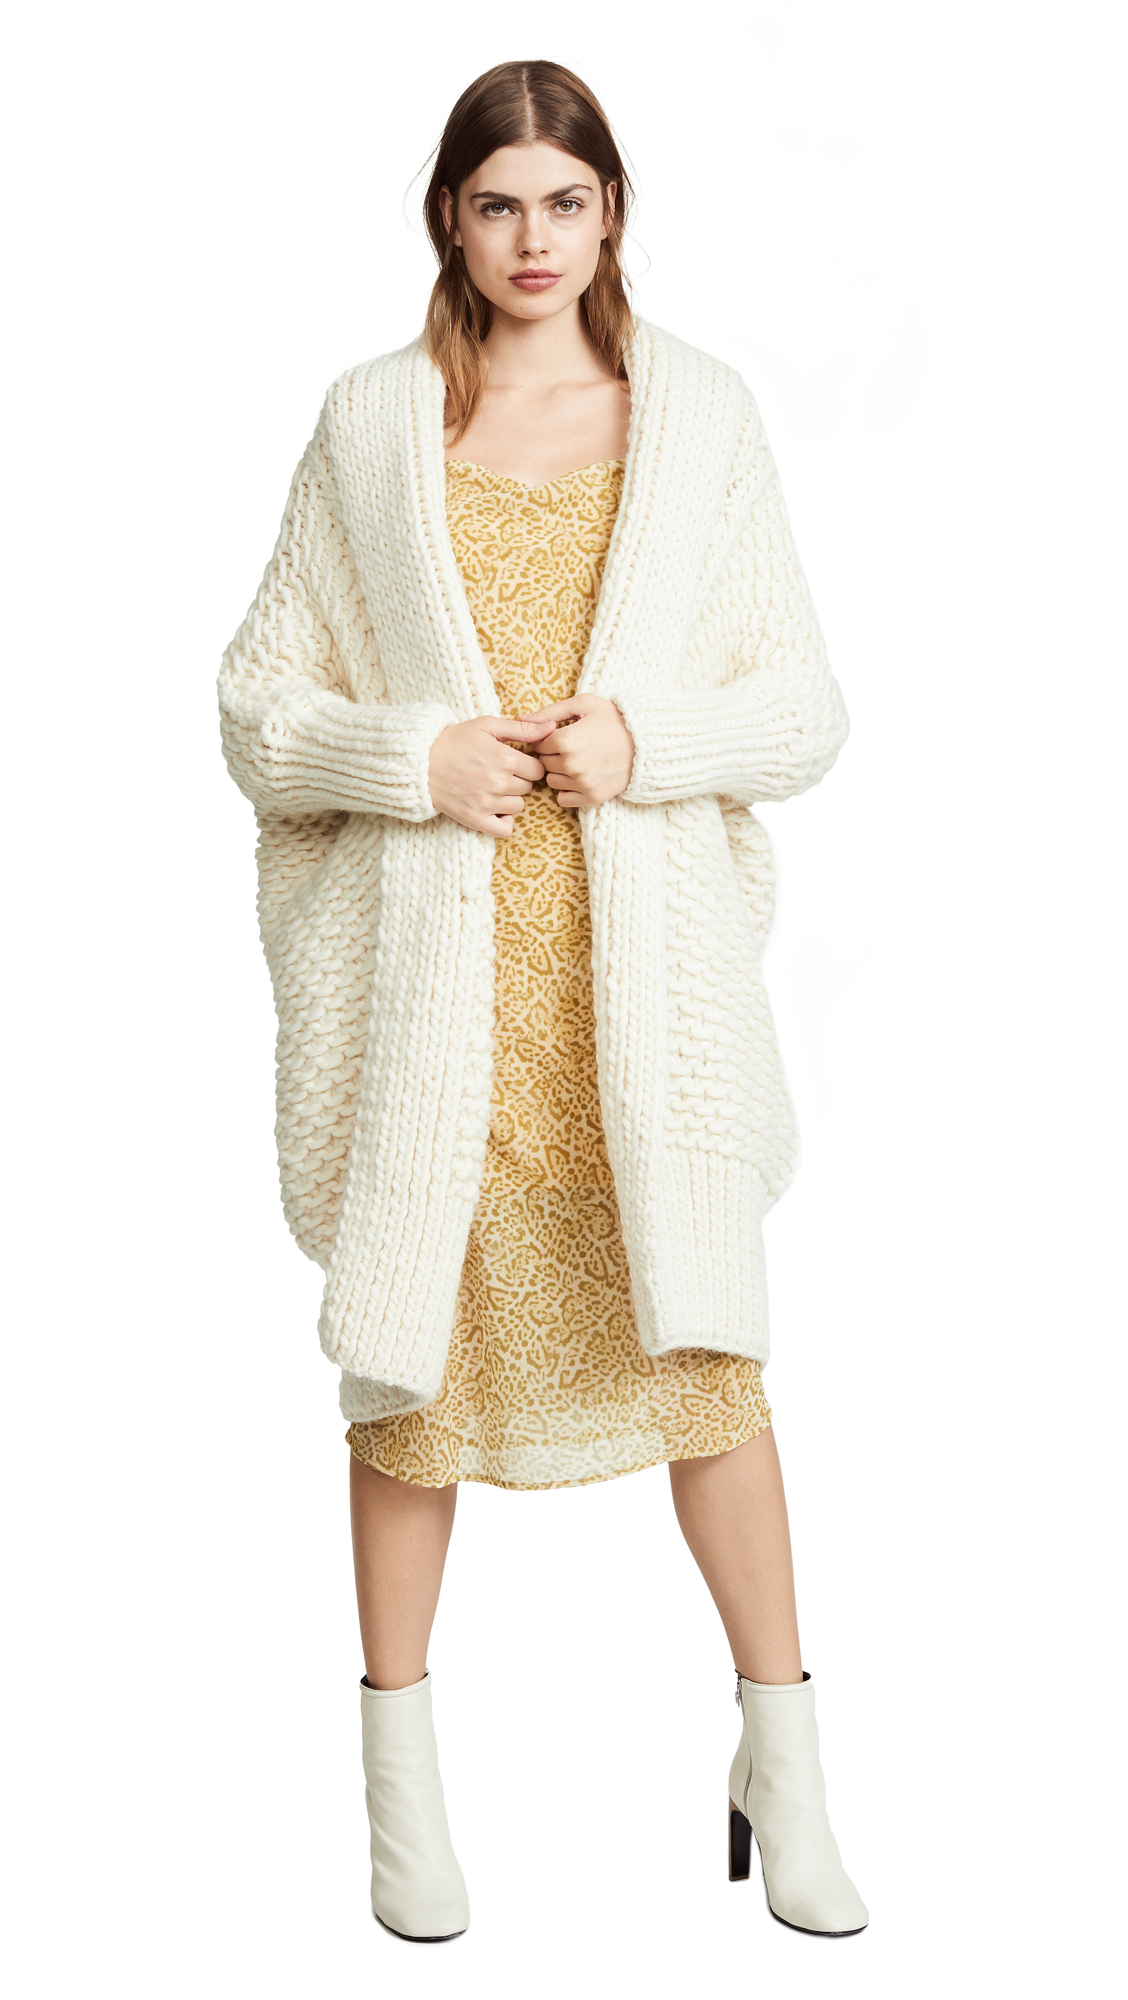 I LOVE MR. MITTENS Pearl Stitch Cardigan in Cream